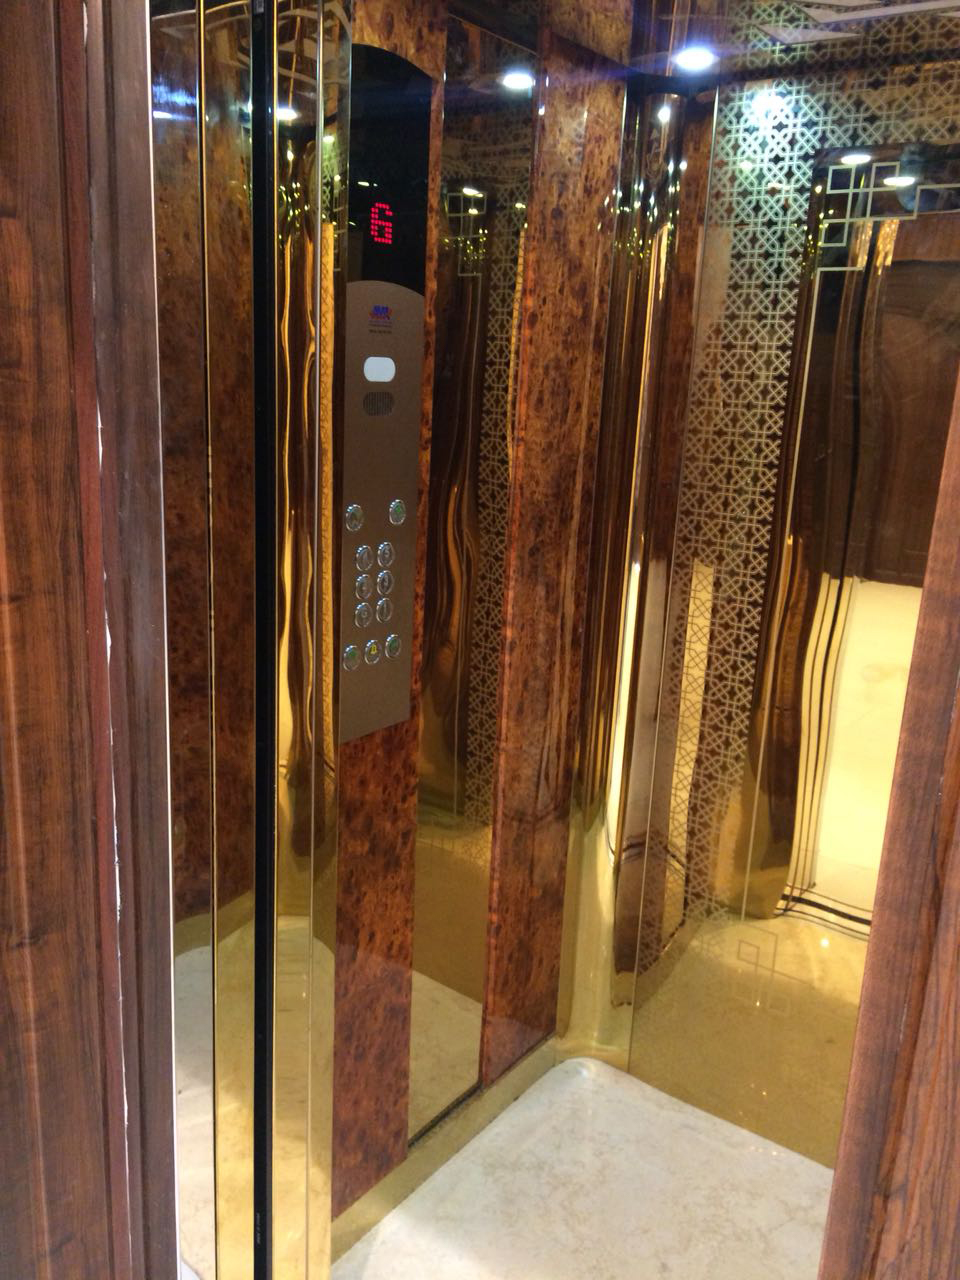 Lifts for residential buildings